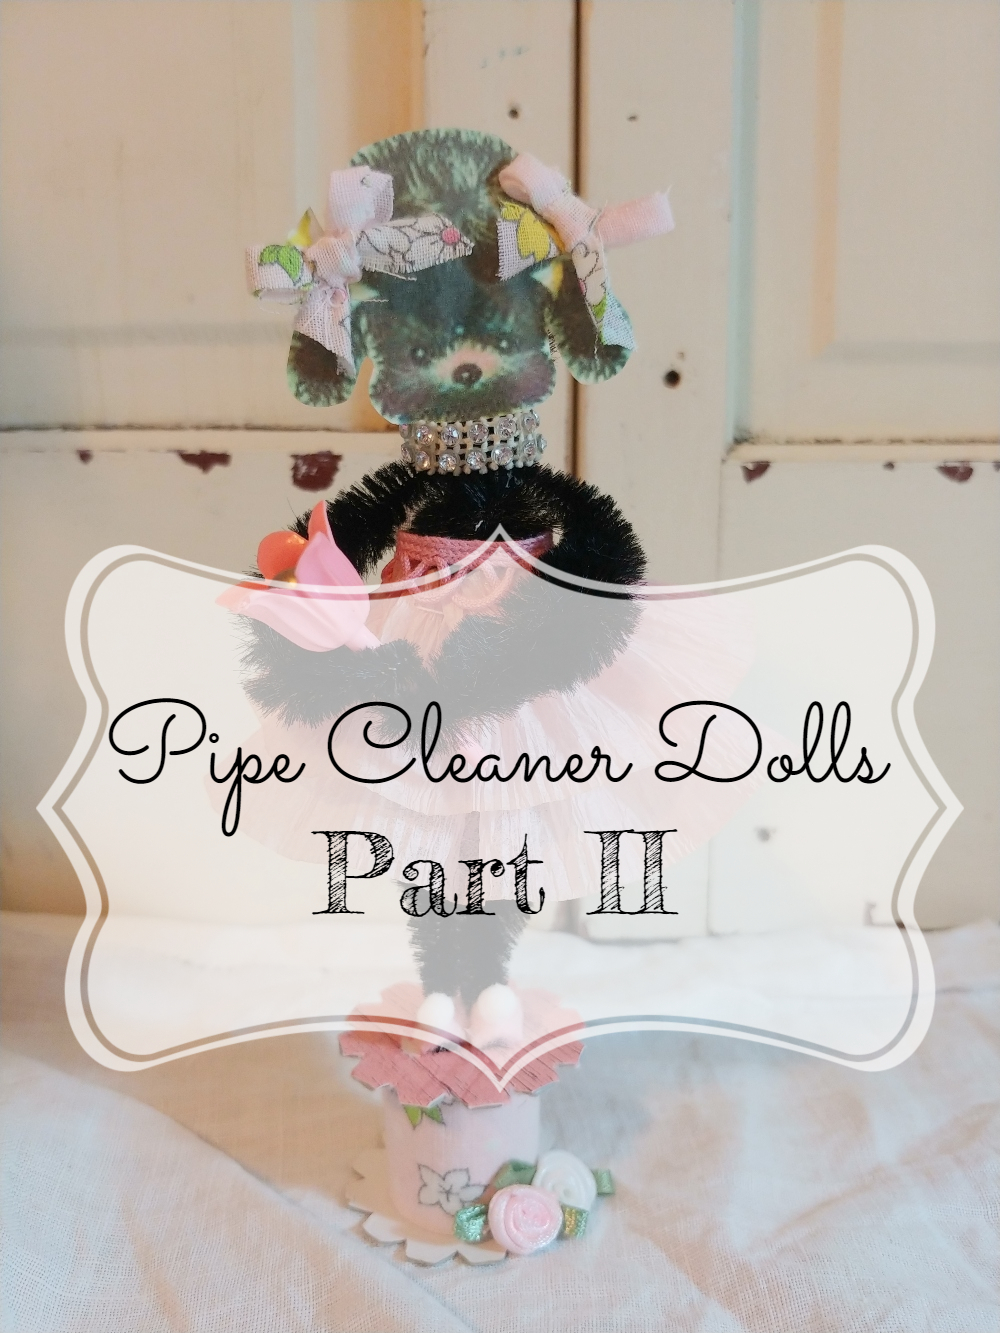 Adorable Pipe Cleaner Dolls - Part II